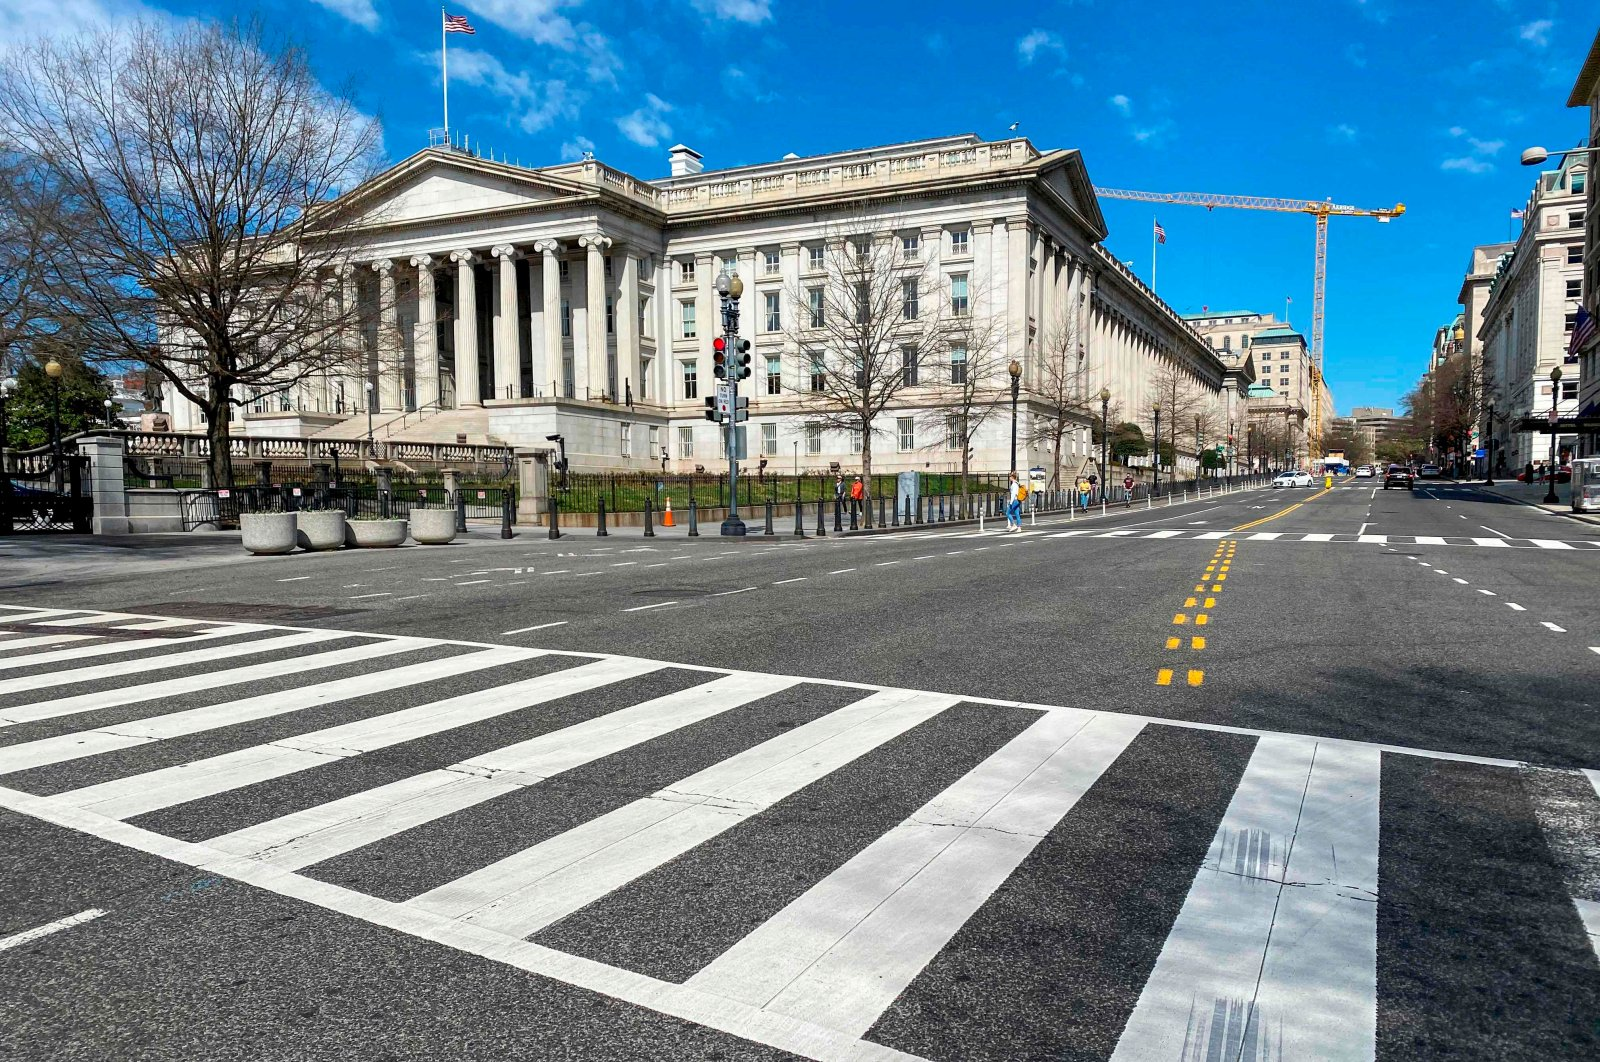 The U.S. Treasury Department building is seen next to an almost empty 15th Street at noon in Washington D.C., U.S., March 13, 2020. (AFP Photo)